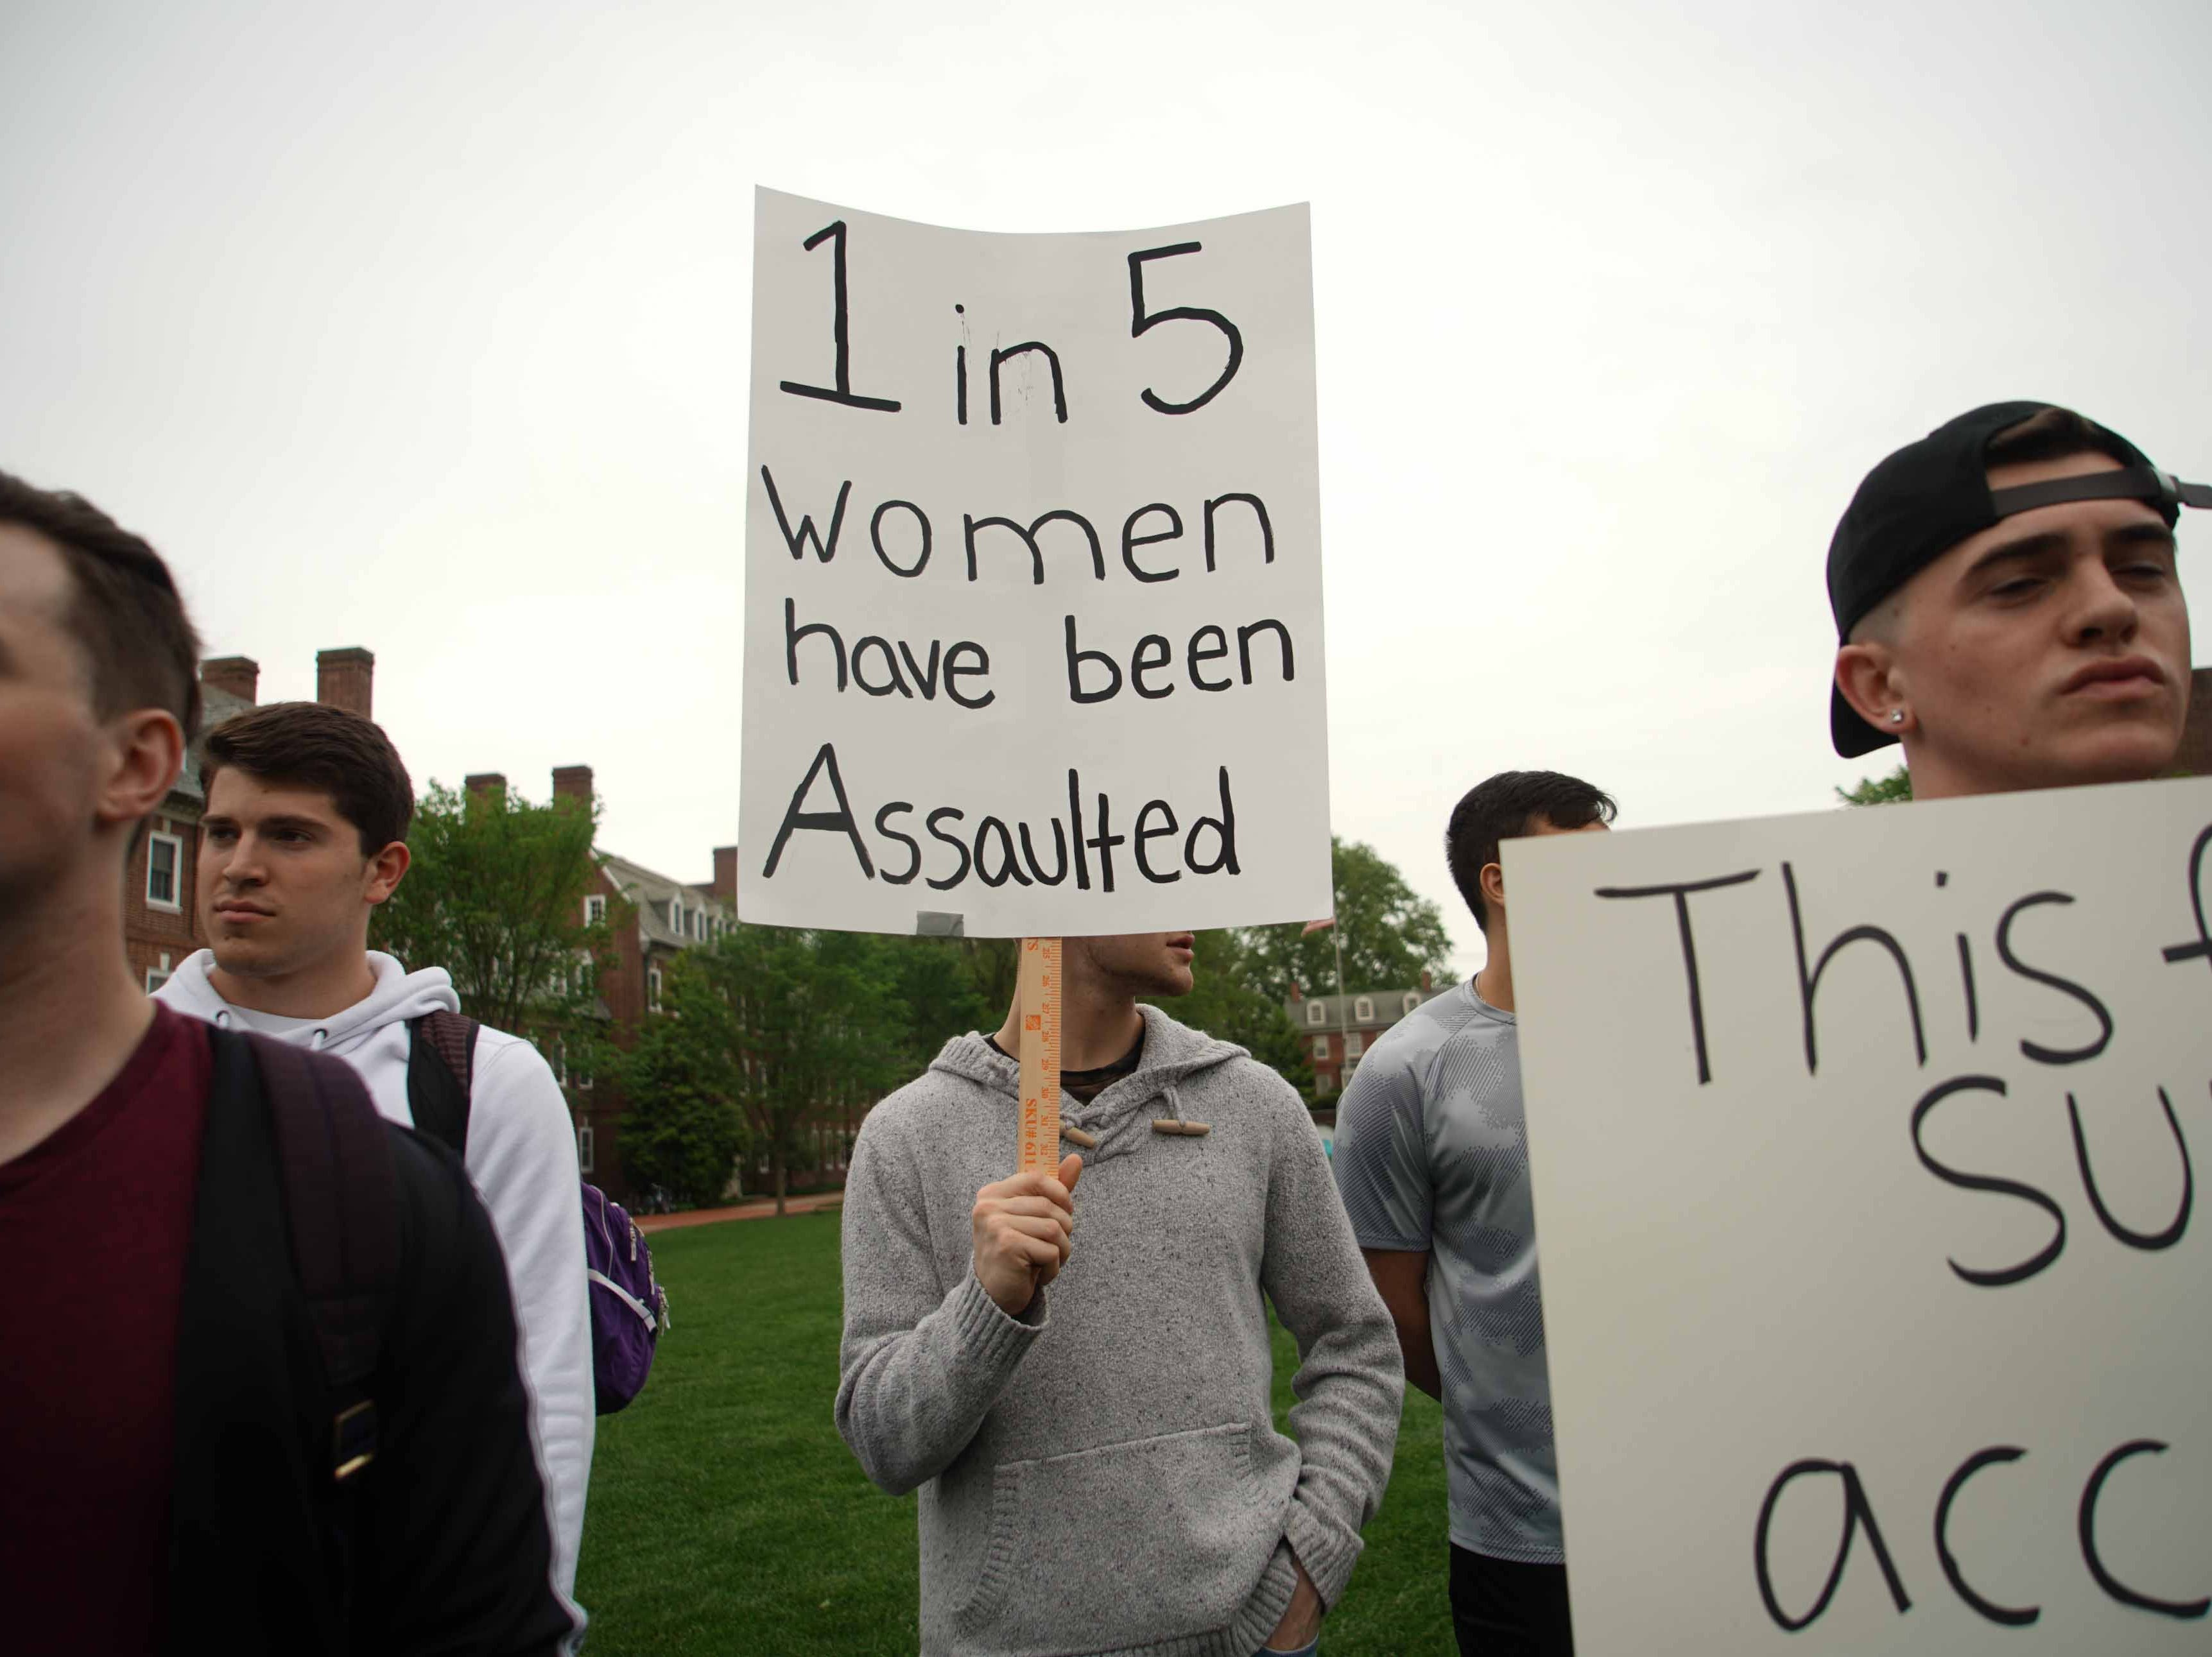 Students and some faculty gathered on the university's Green Wednesday afternoon to support Alyvia Pauzer, 19, a sophomore at the University of Delaware, who was sexual assaulted on campus. After filing charges the state prosecutors decided not to file charges.